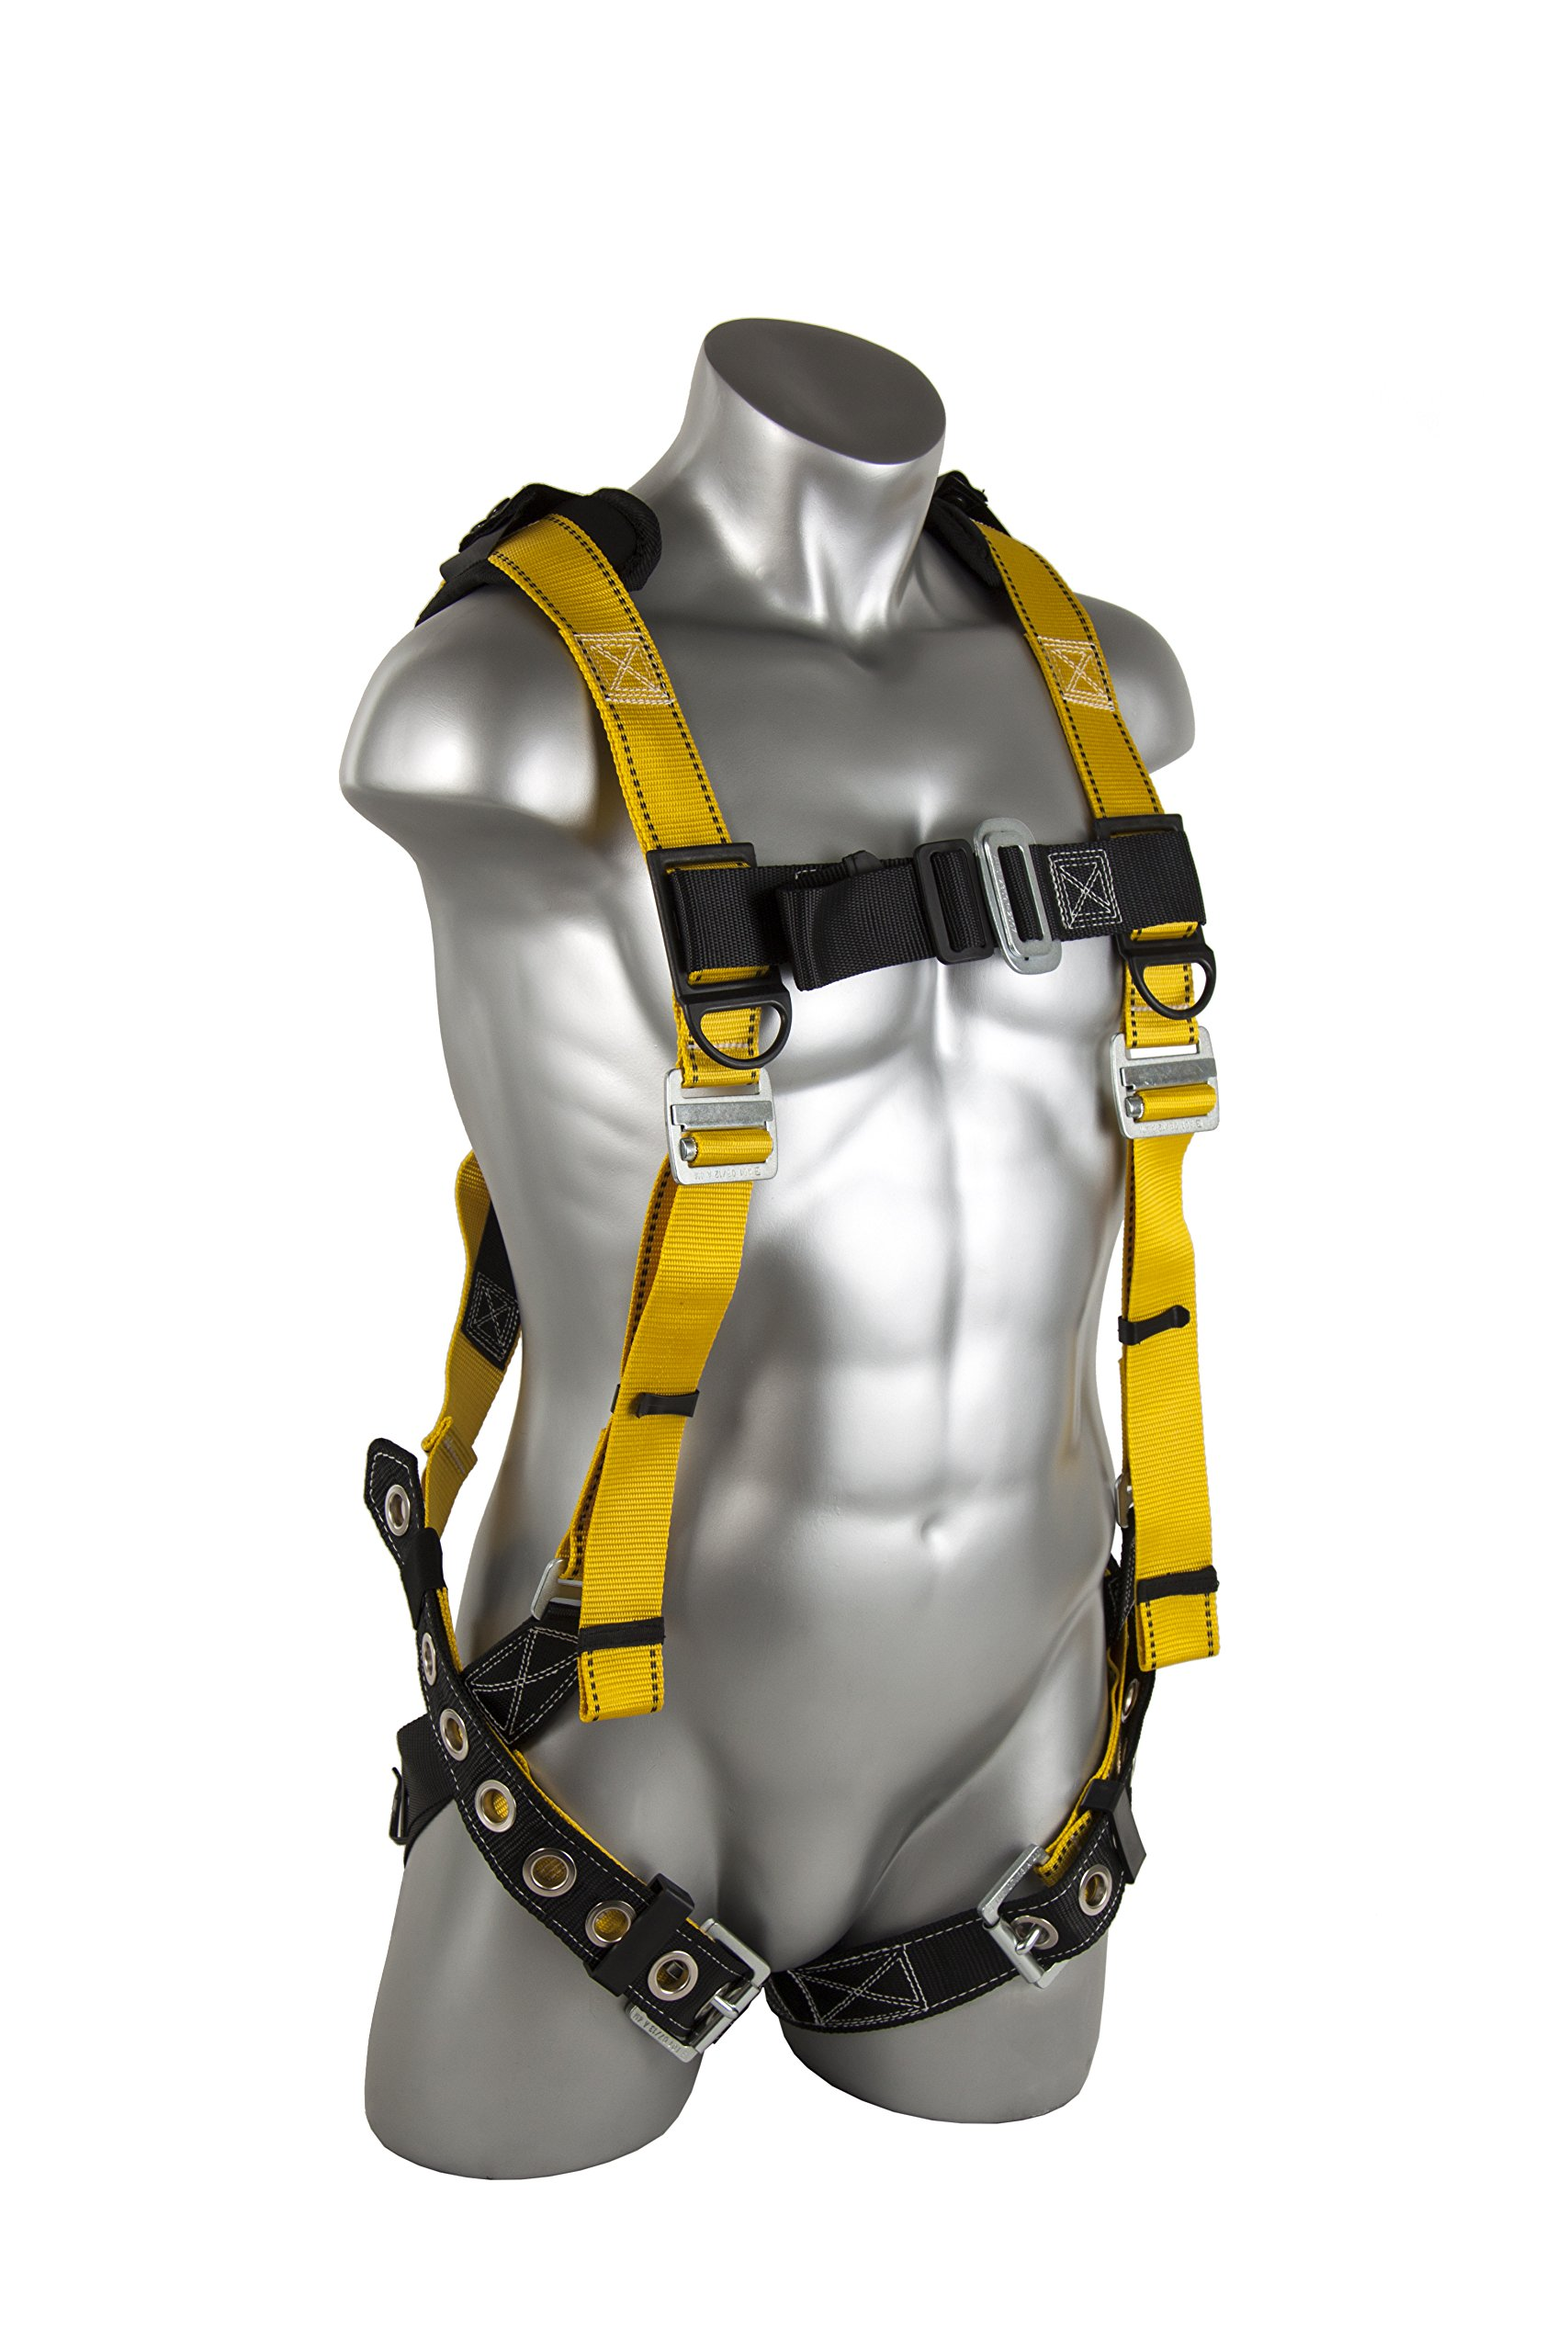 Guardian Fall Protection 11166 XL-XXL Seraph Universal Harness with Leg Tongue Buckle Straps by Guardian Fall Protection